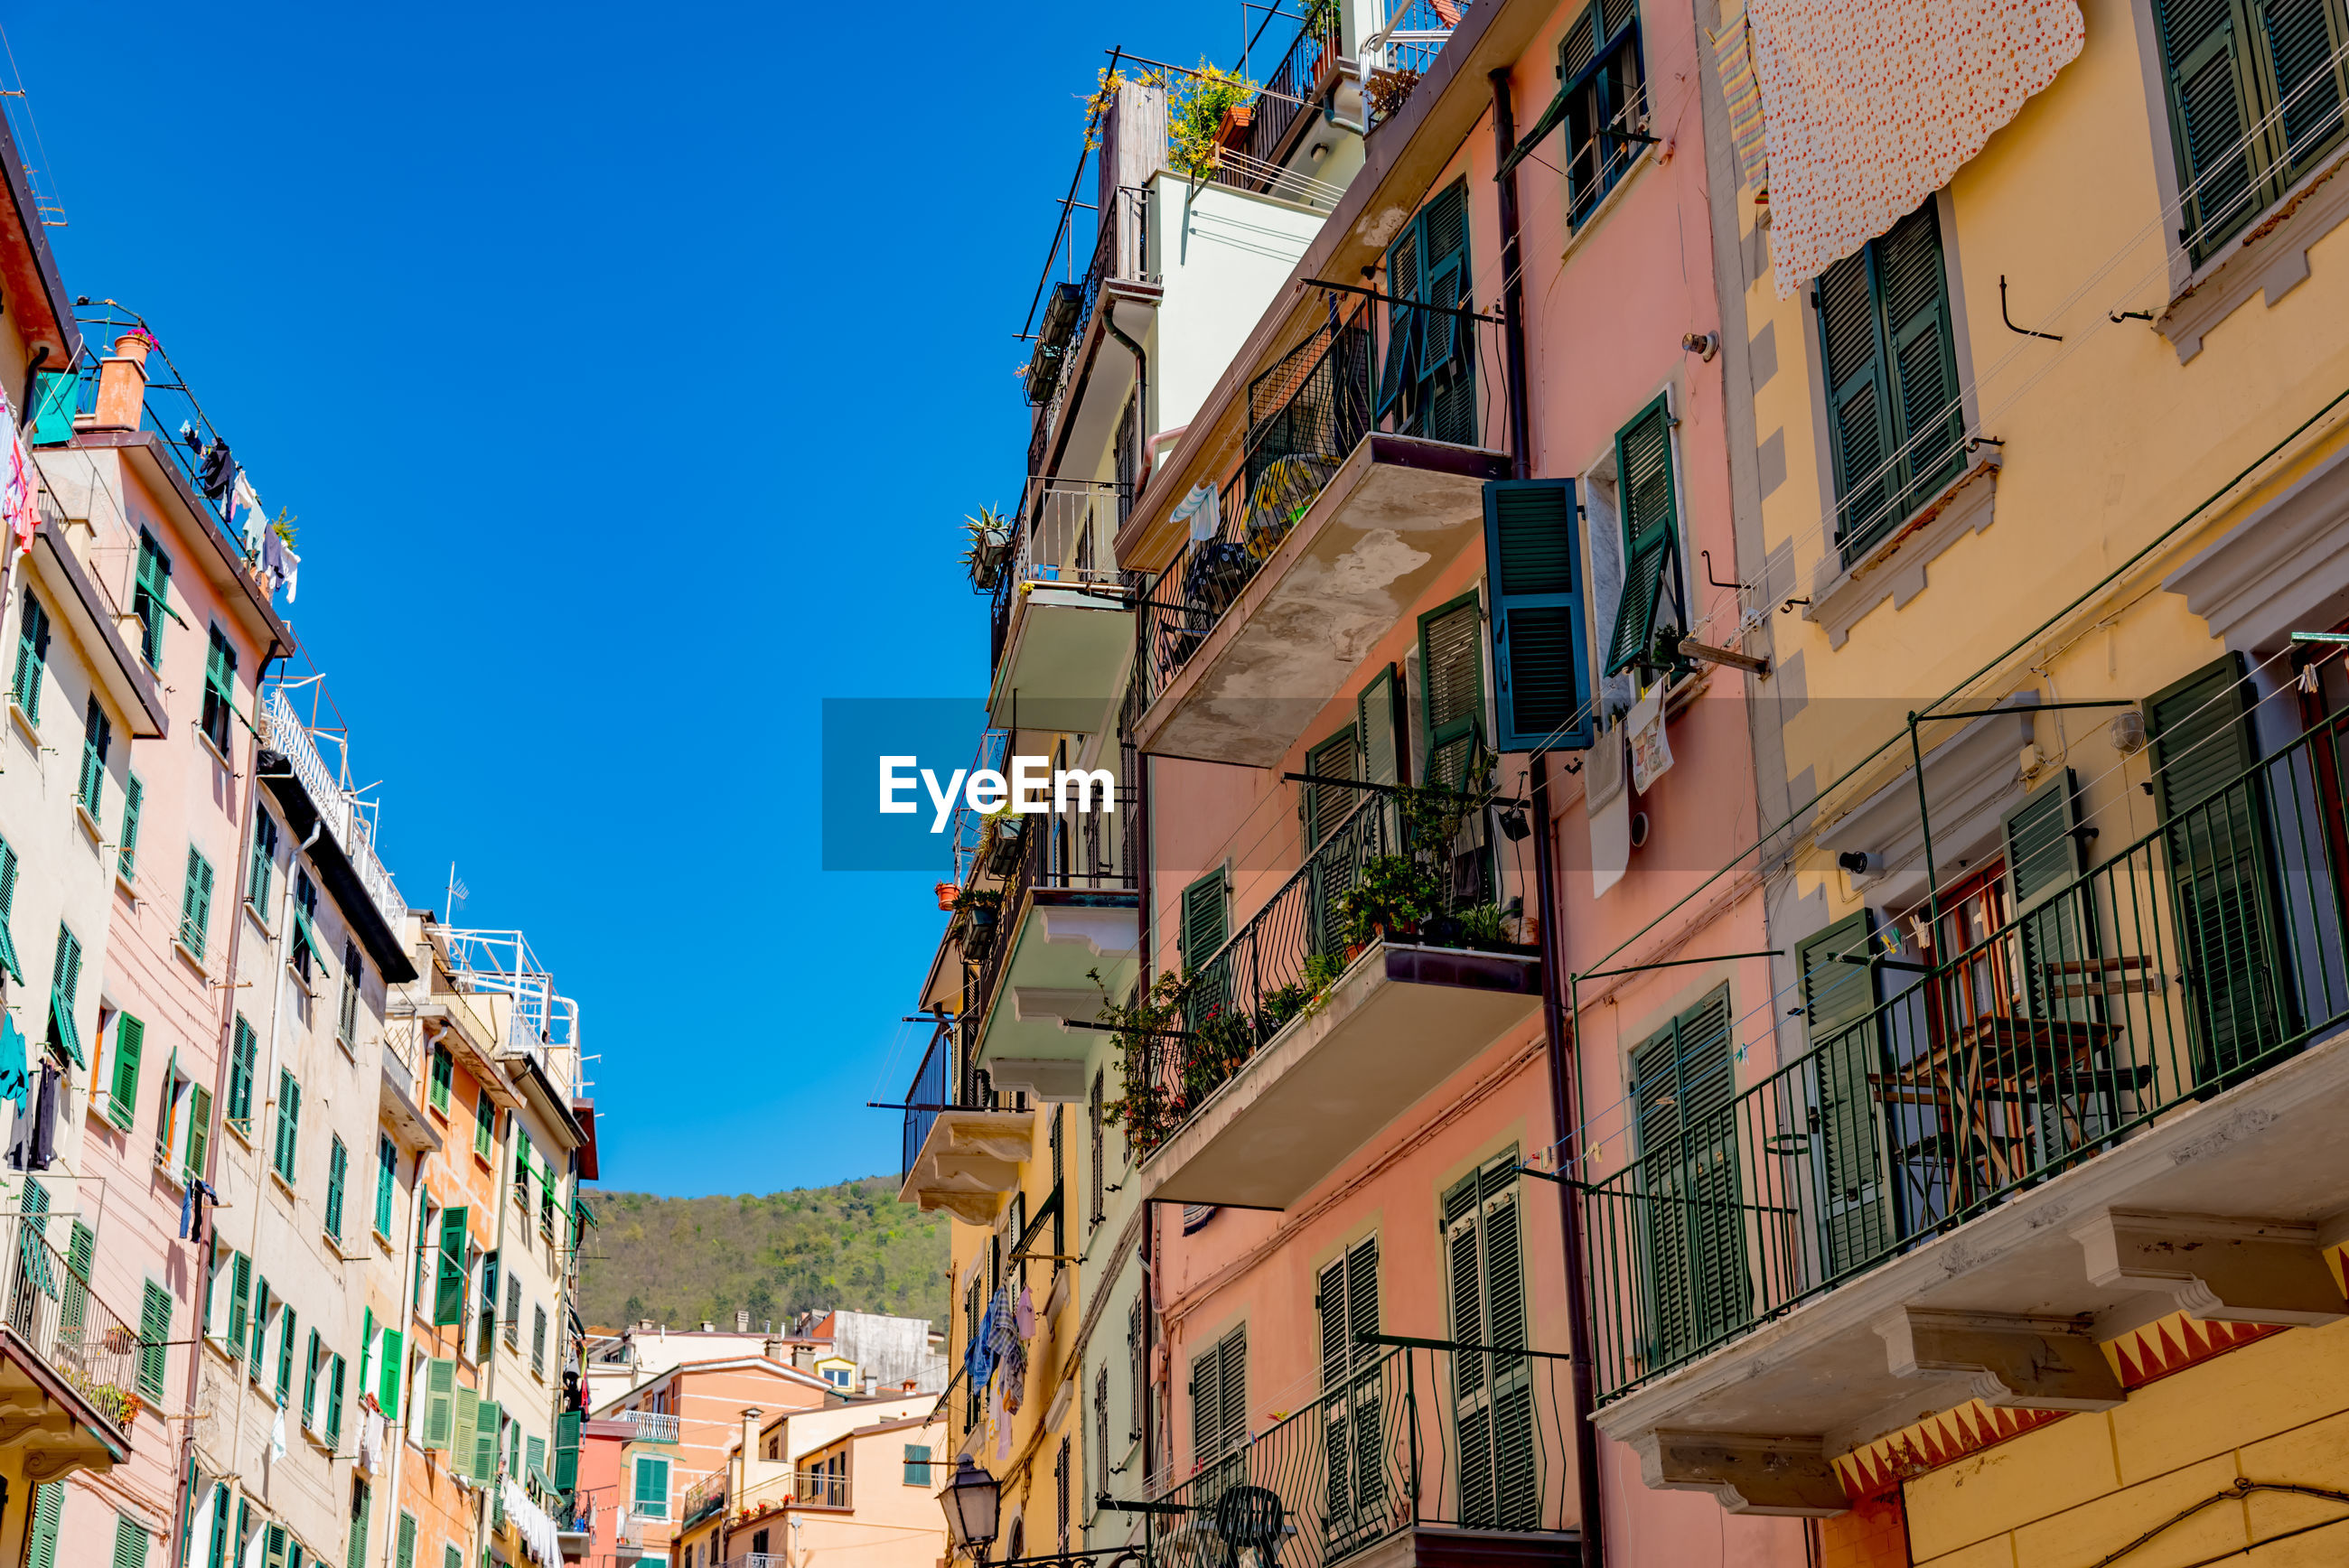 Low angle view of buildings against clear sky at riomaggiore